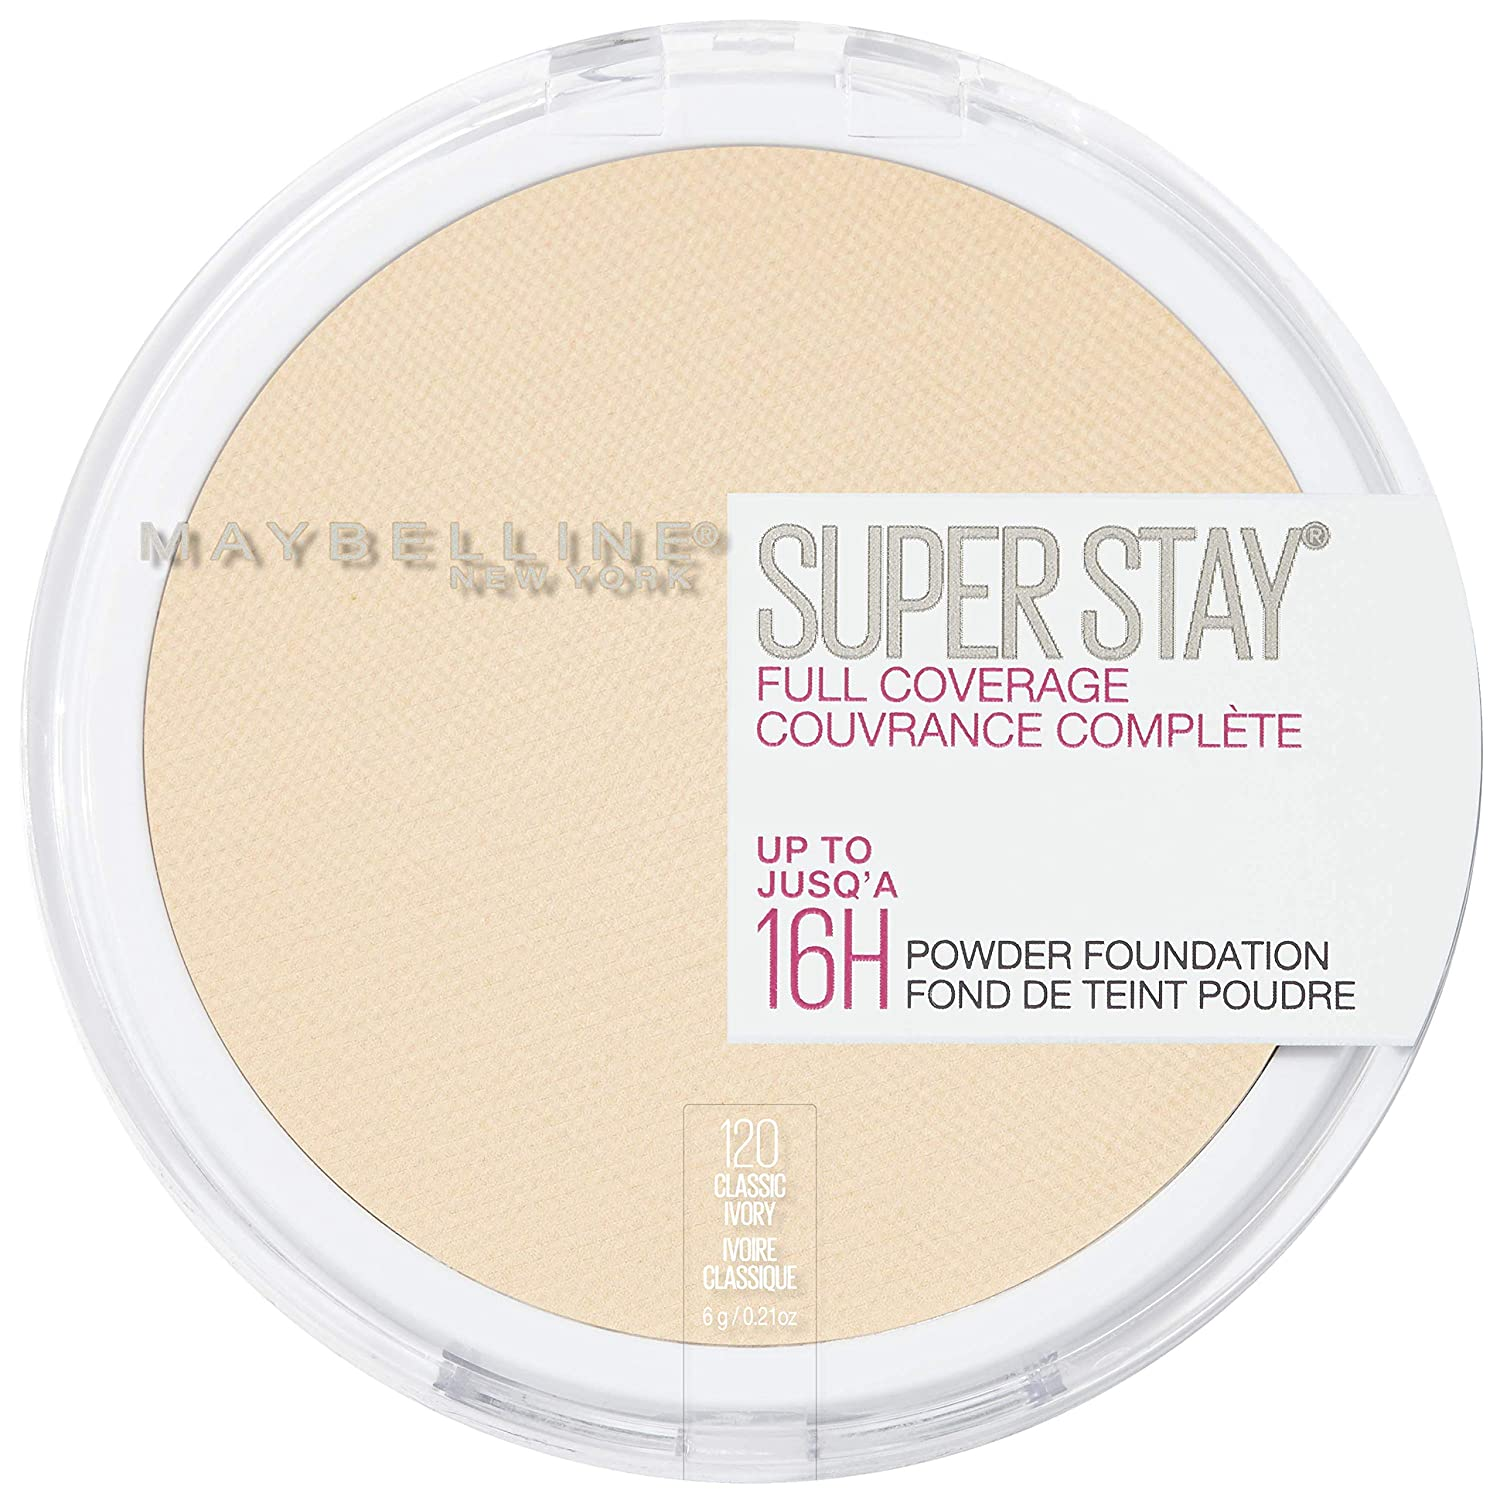 Maybelline New York Super Stay Full Coverage